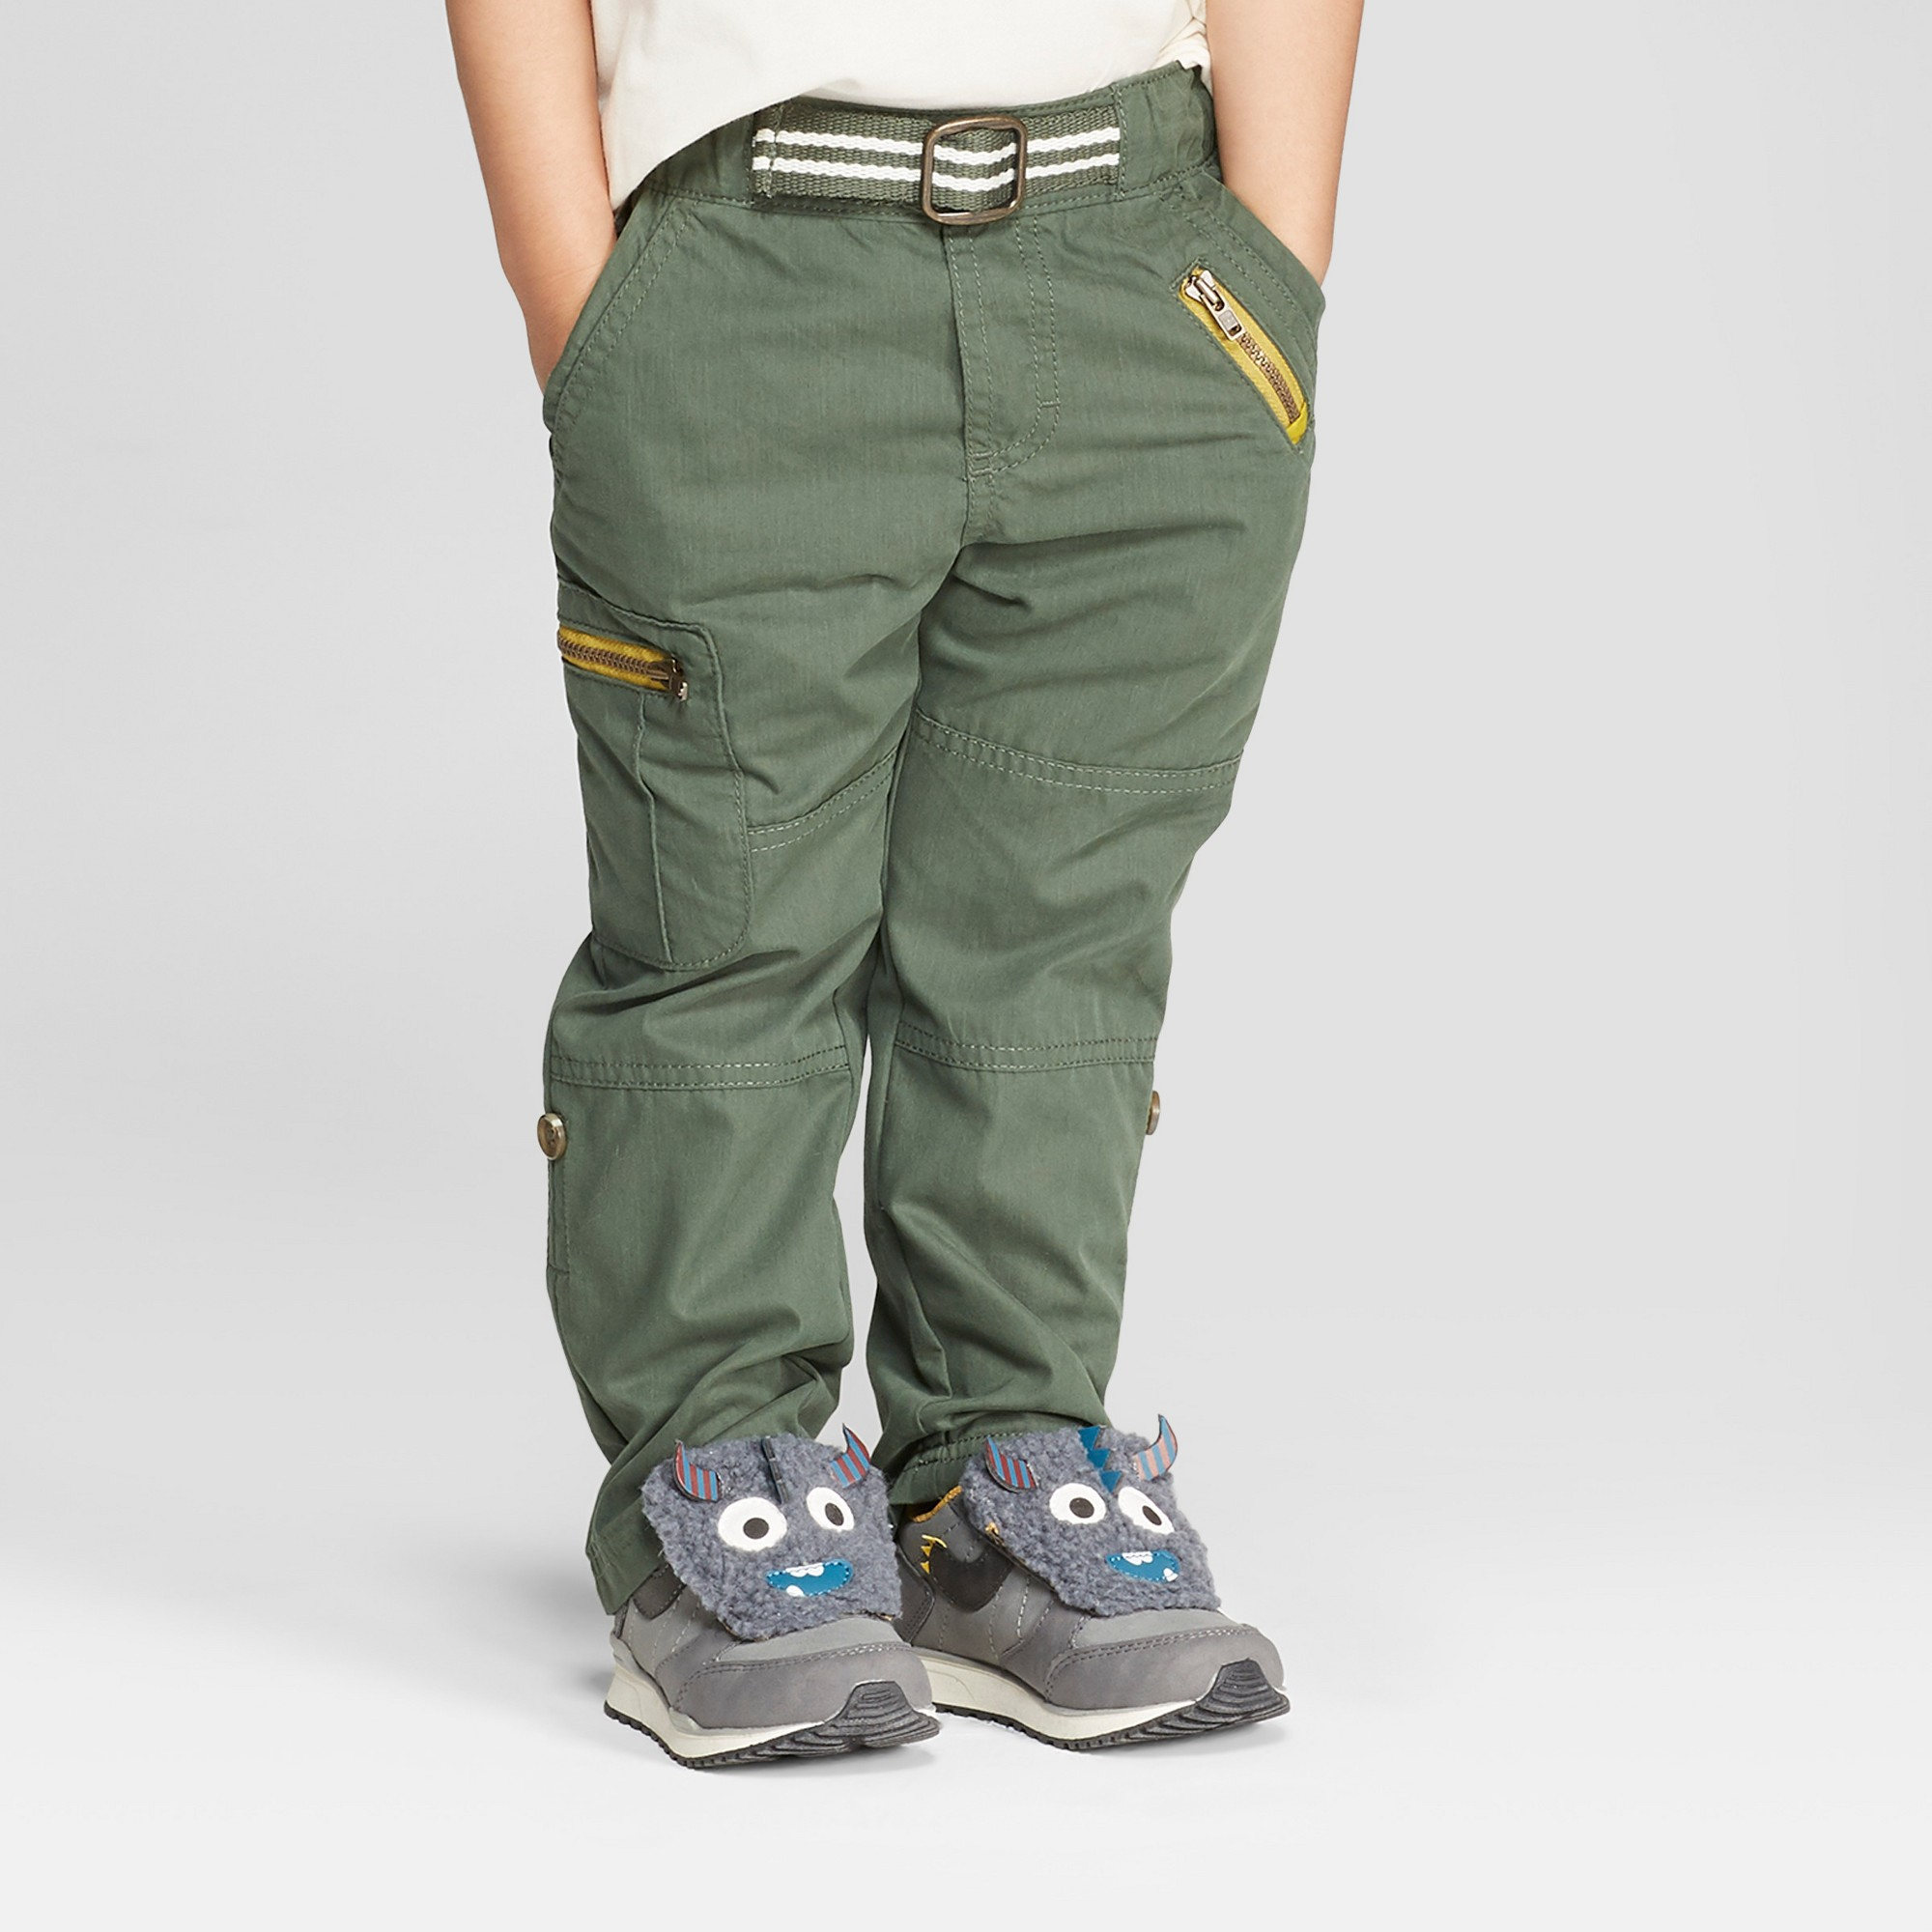 6bc869824 Genuine Kids from Oshkosh Toddler Boys' Cargo Pants with Built in Belt -  Green 12M